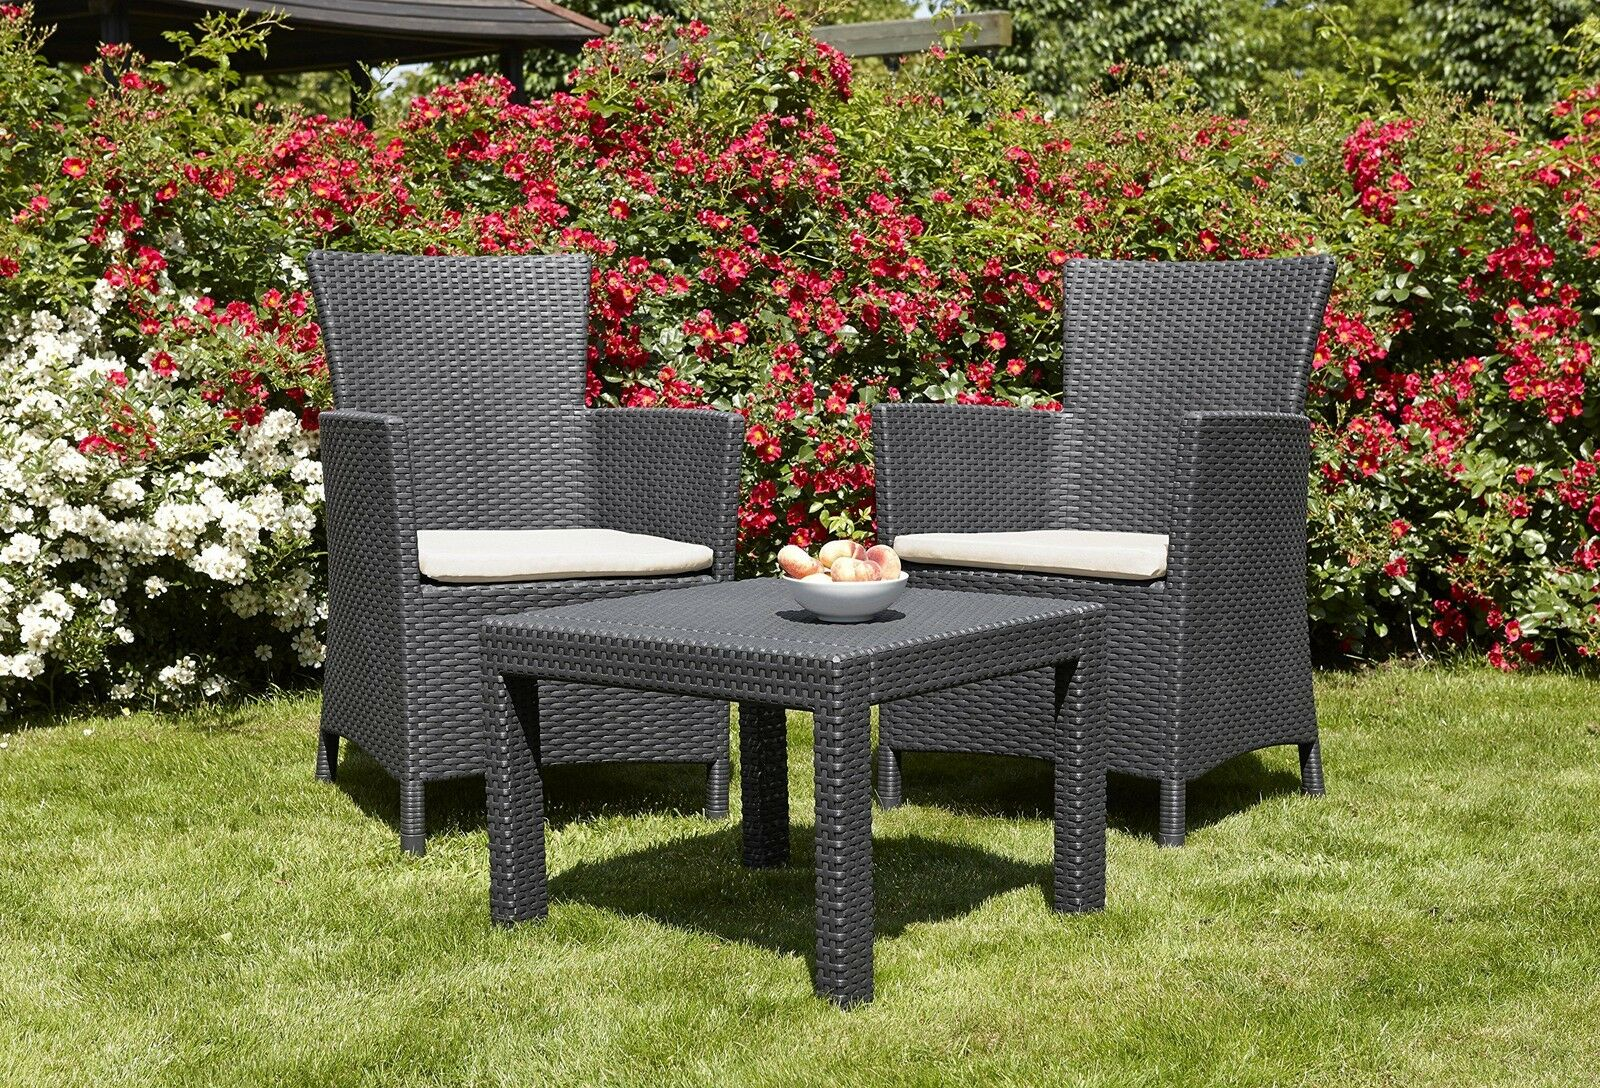 2 chairs and table patio set proper posture desk chair rattan wicker weave garden furniture outdoor